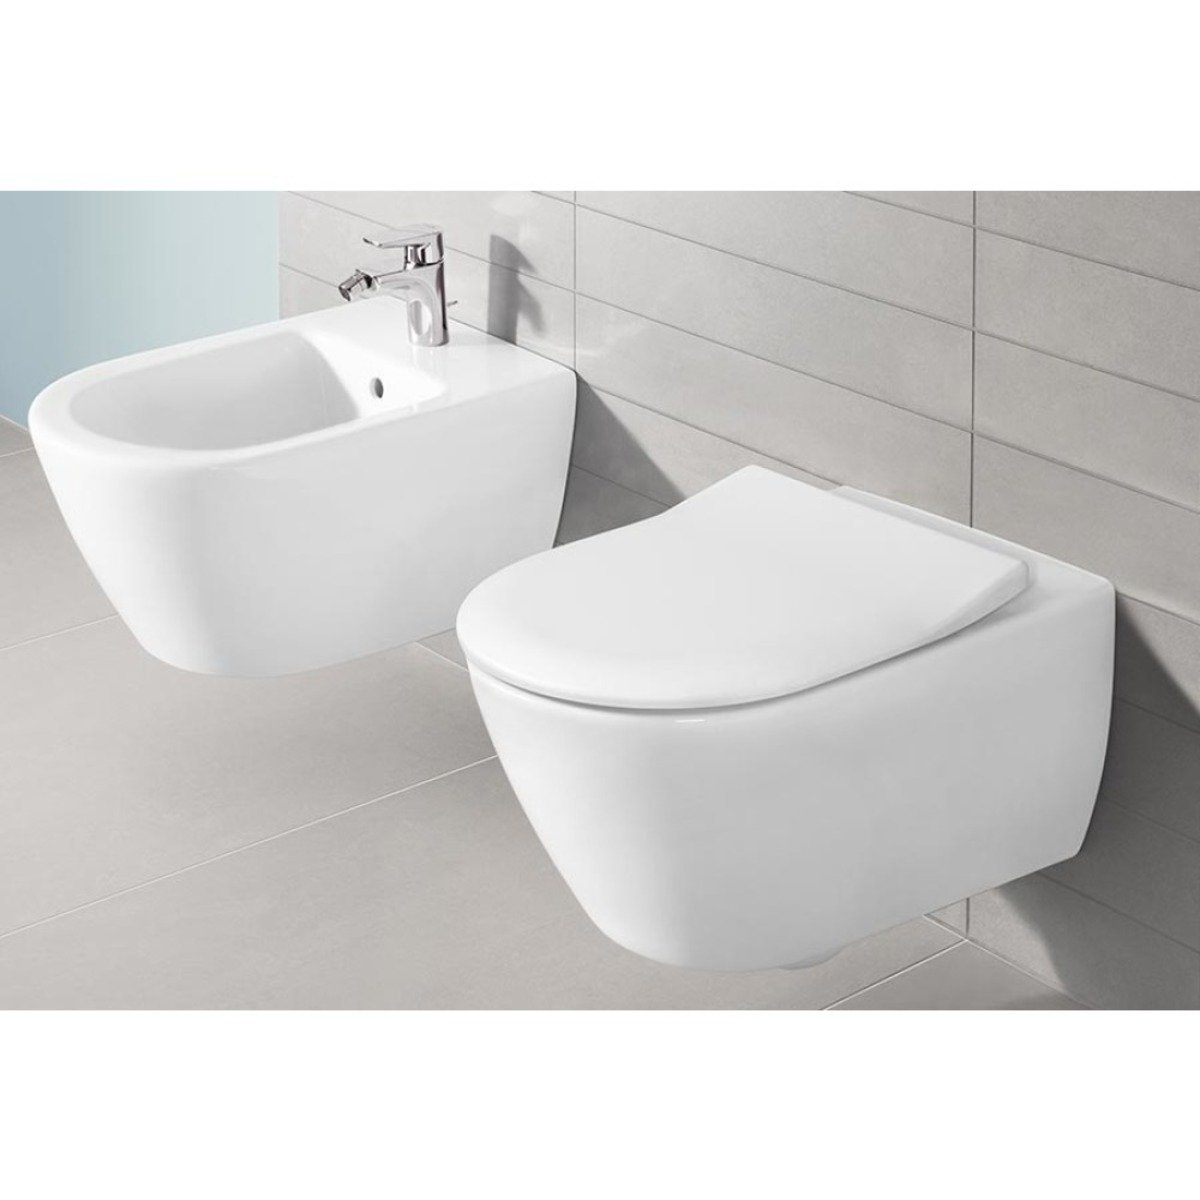 villeroy en boch subway 2 0 directflush toiletset met. Black Bedroom Furniture Sets. Home Design Ideas